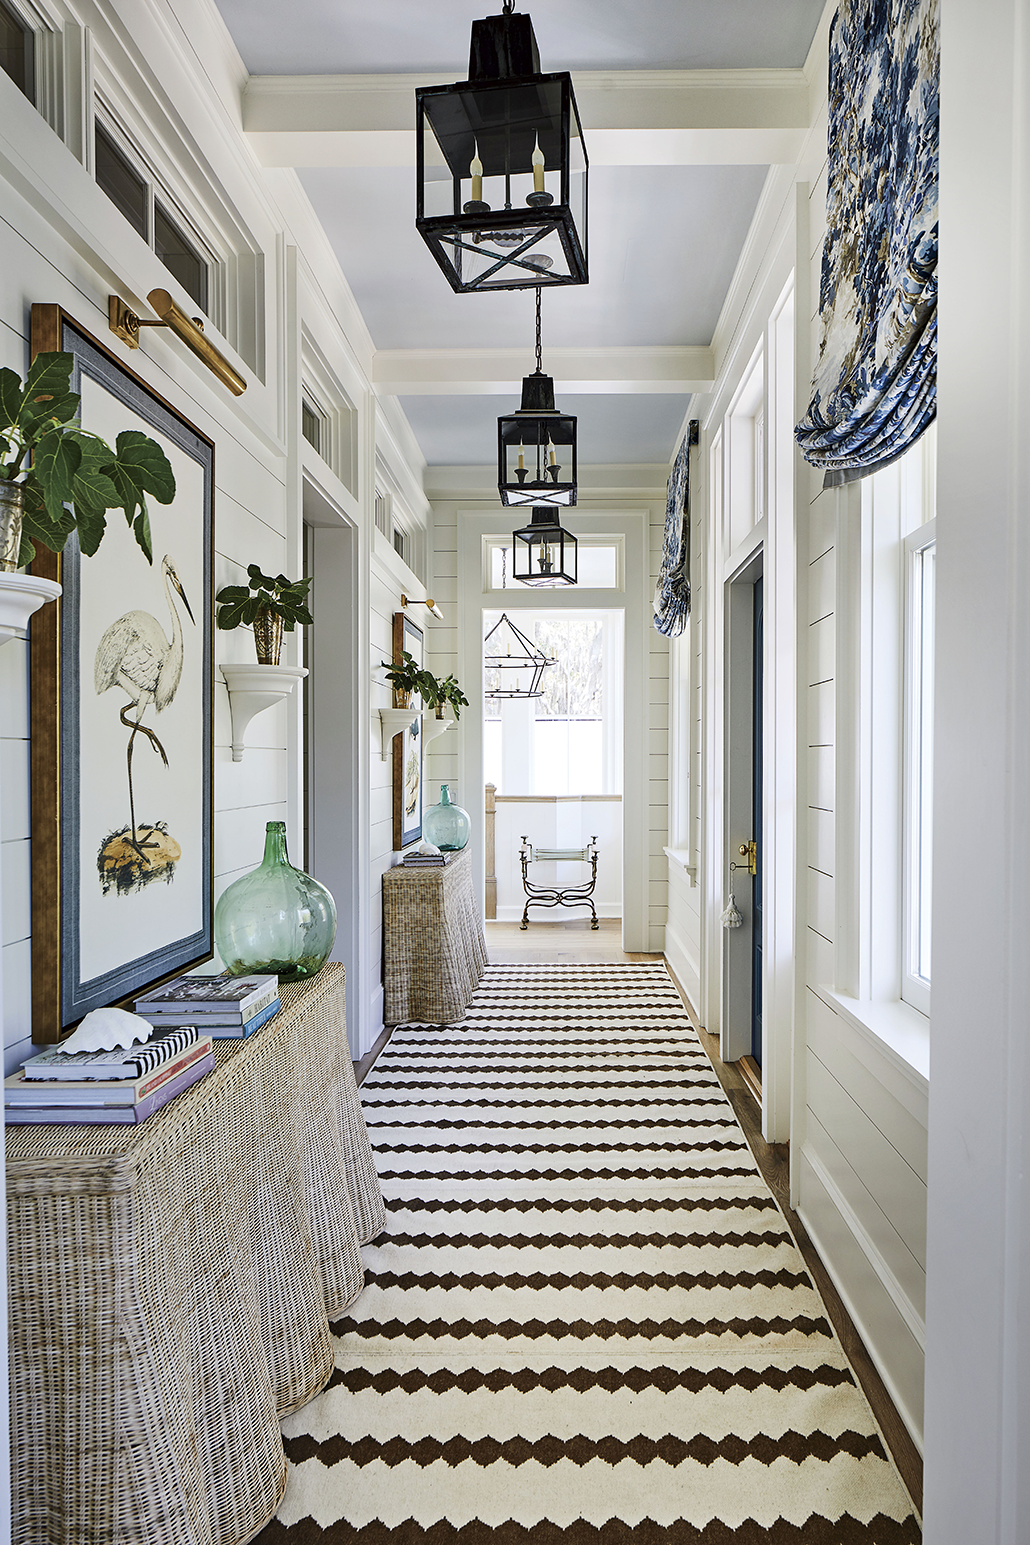 homedecorideassouthern in 2020 | Southern living homes